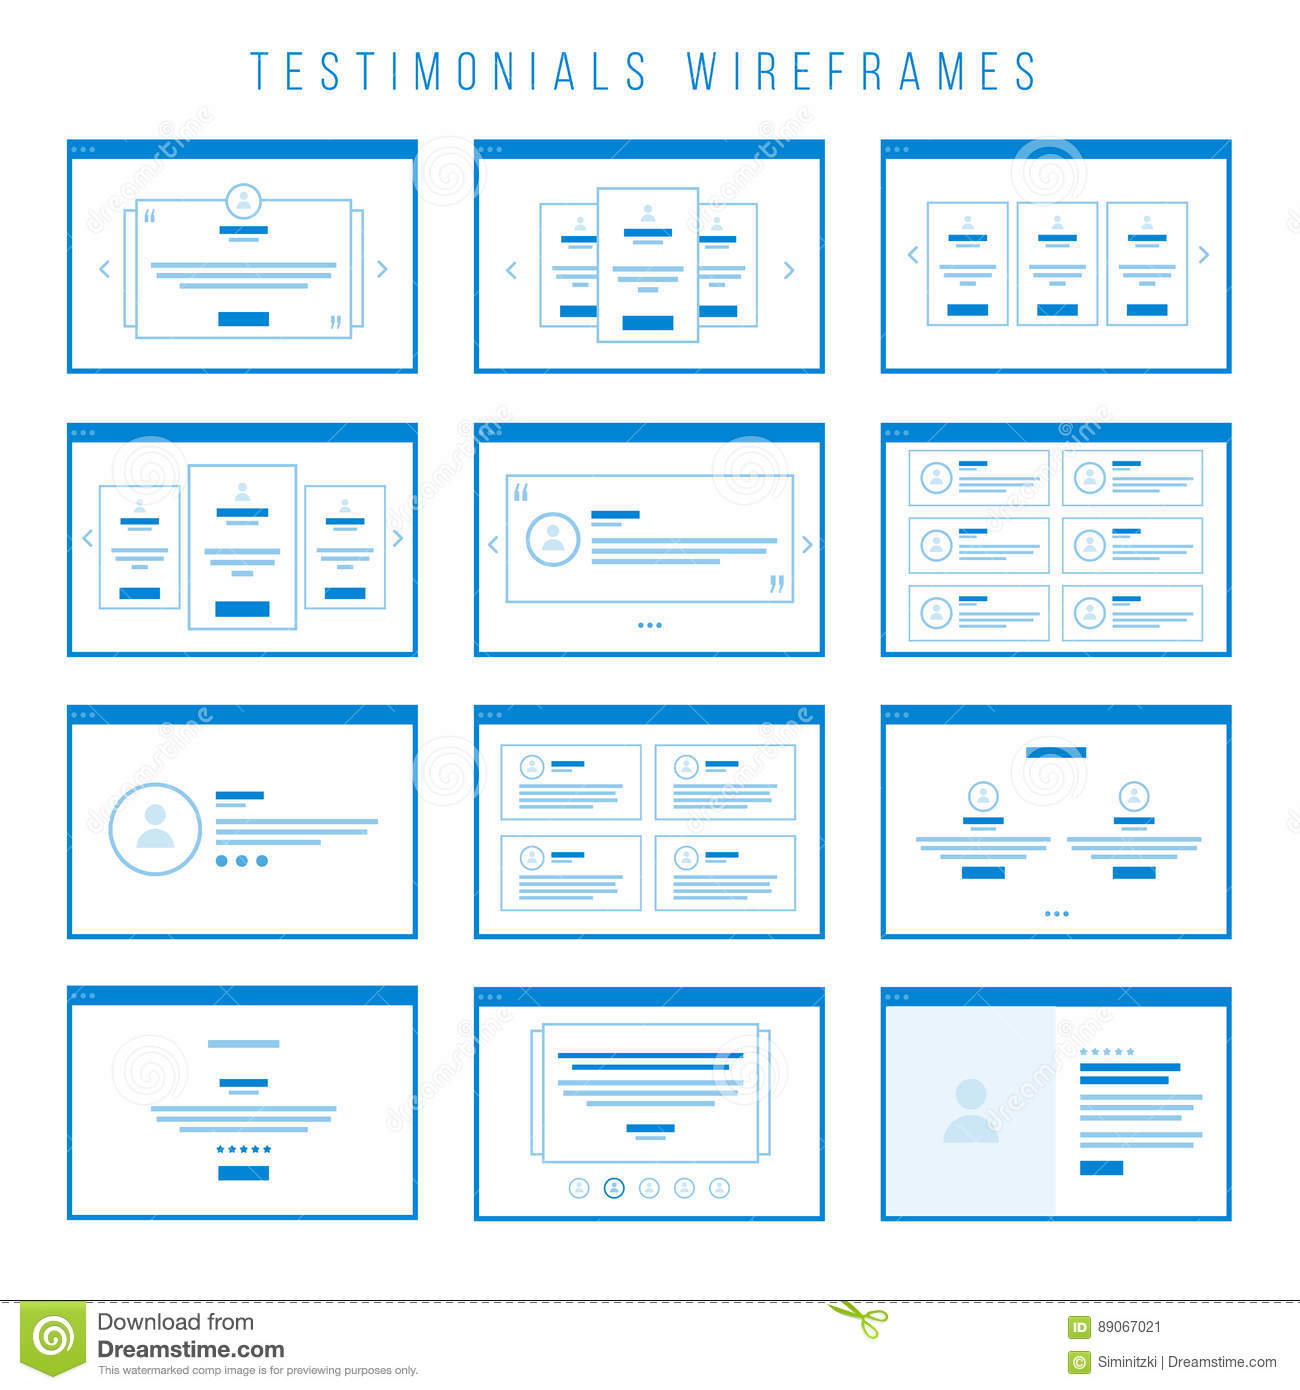 Testimonials Wireframe components for prototypes.